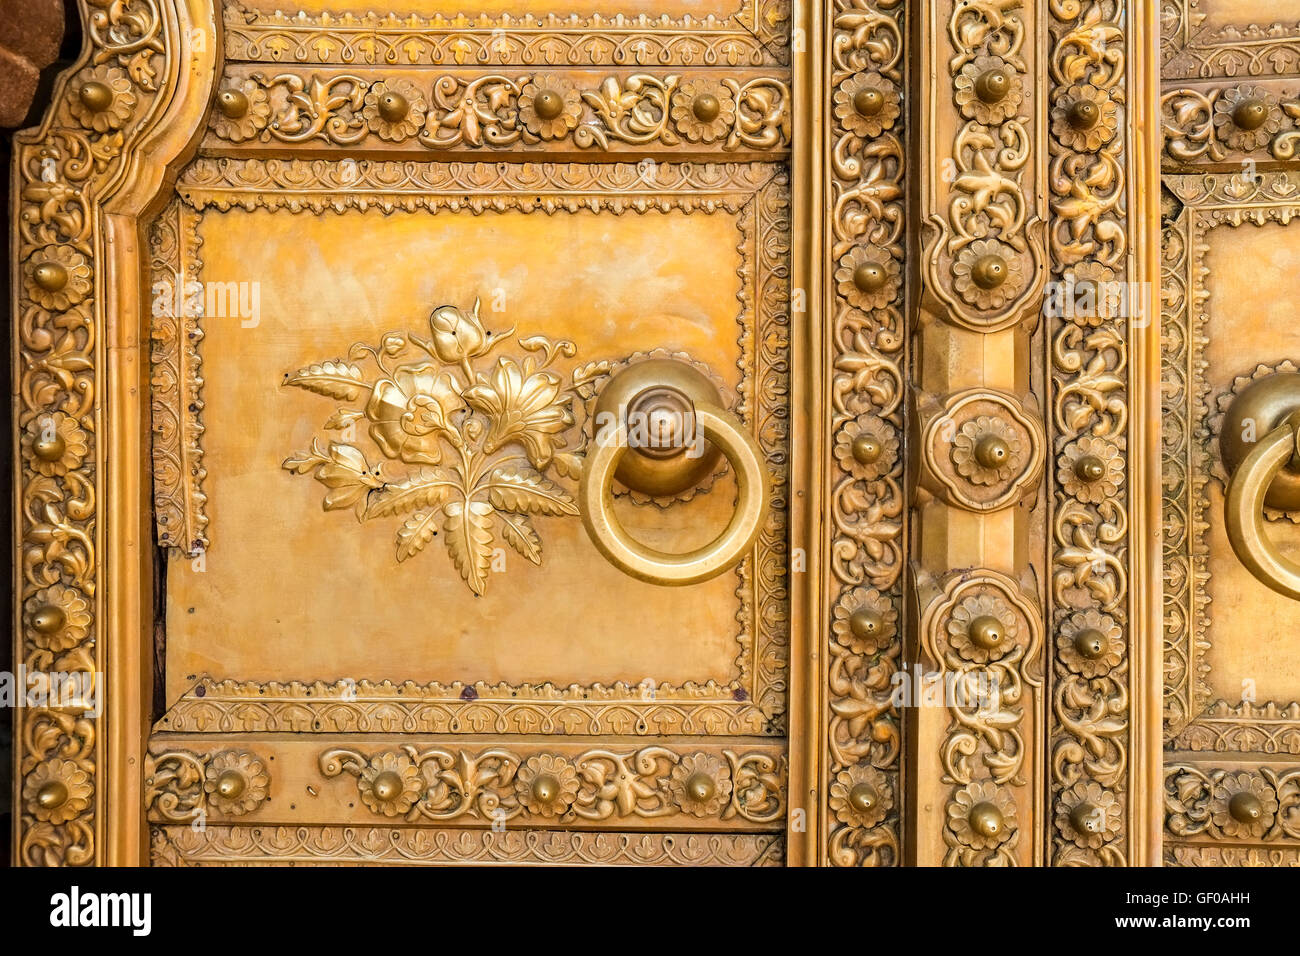 A gold-plated door and door handle at Chandra Mahal, one of the palaces in Jaipur's City Palace, Rajasthan, - Stock Image